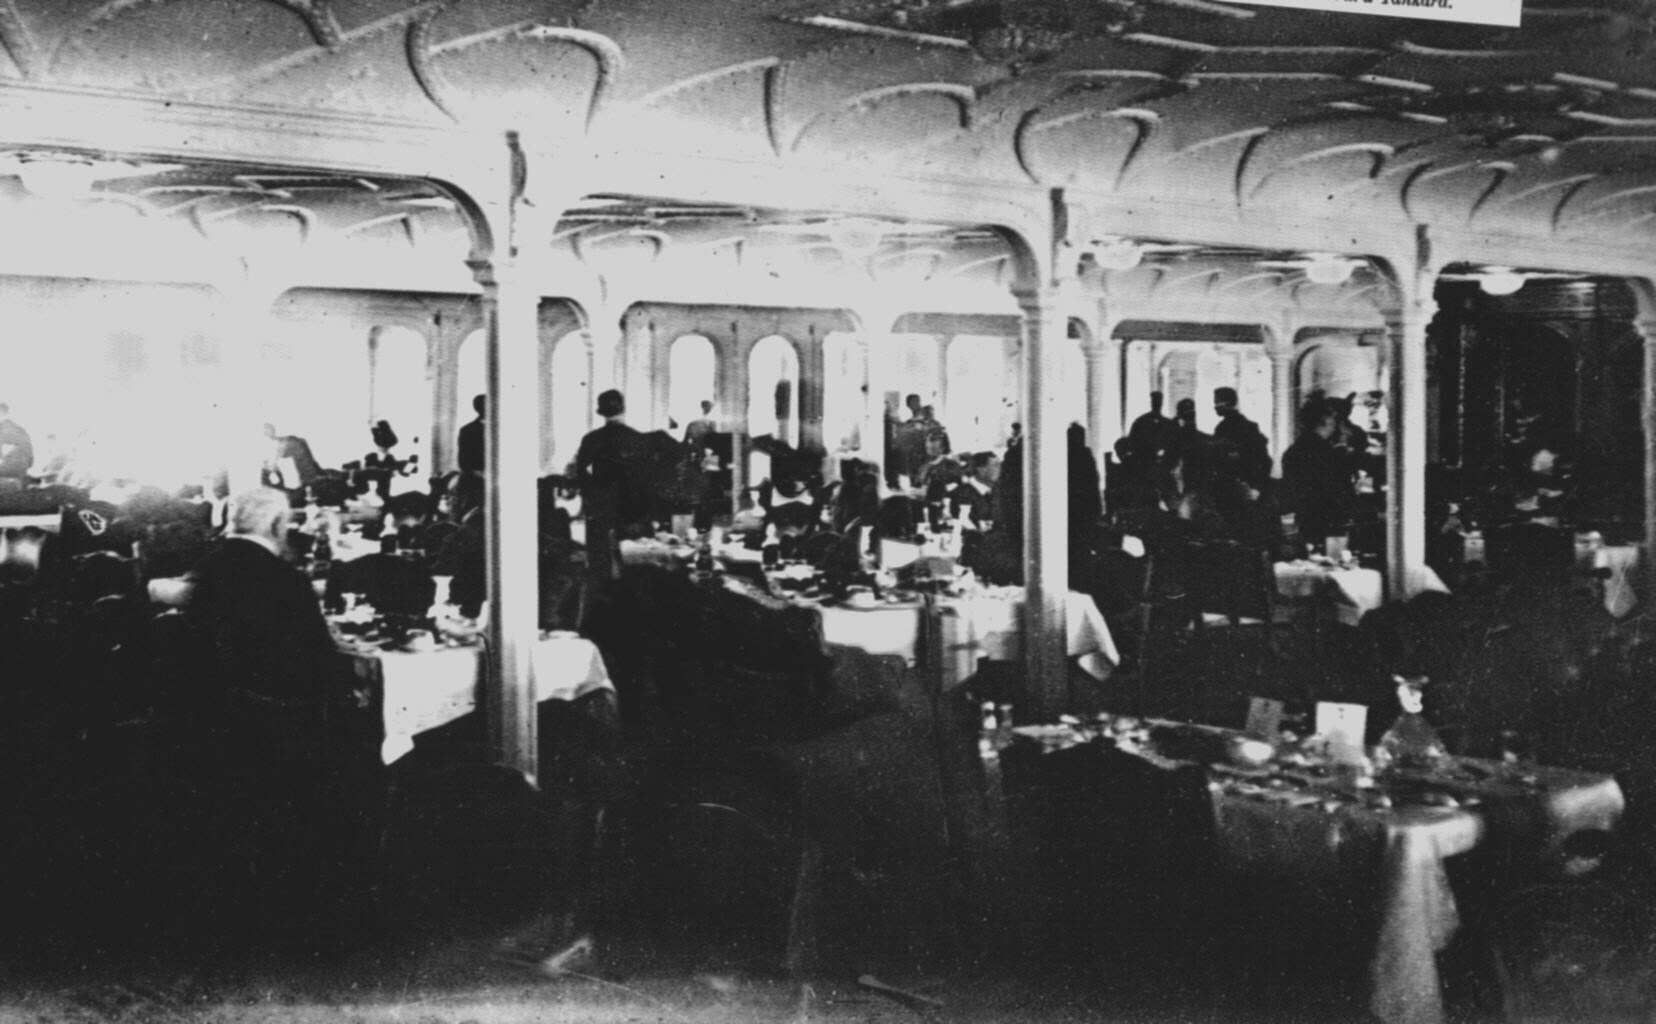 This is the only known photograph taken when the Titanic's First Class Dining Room was in use. It's believed to date from luncheon on April 11th, 1912.